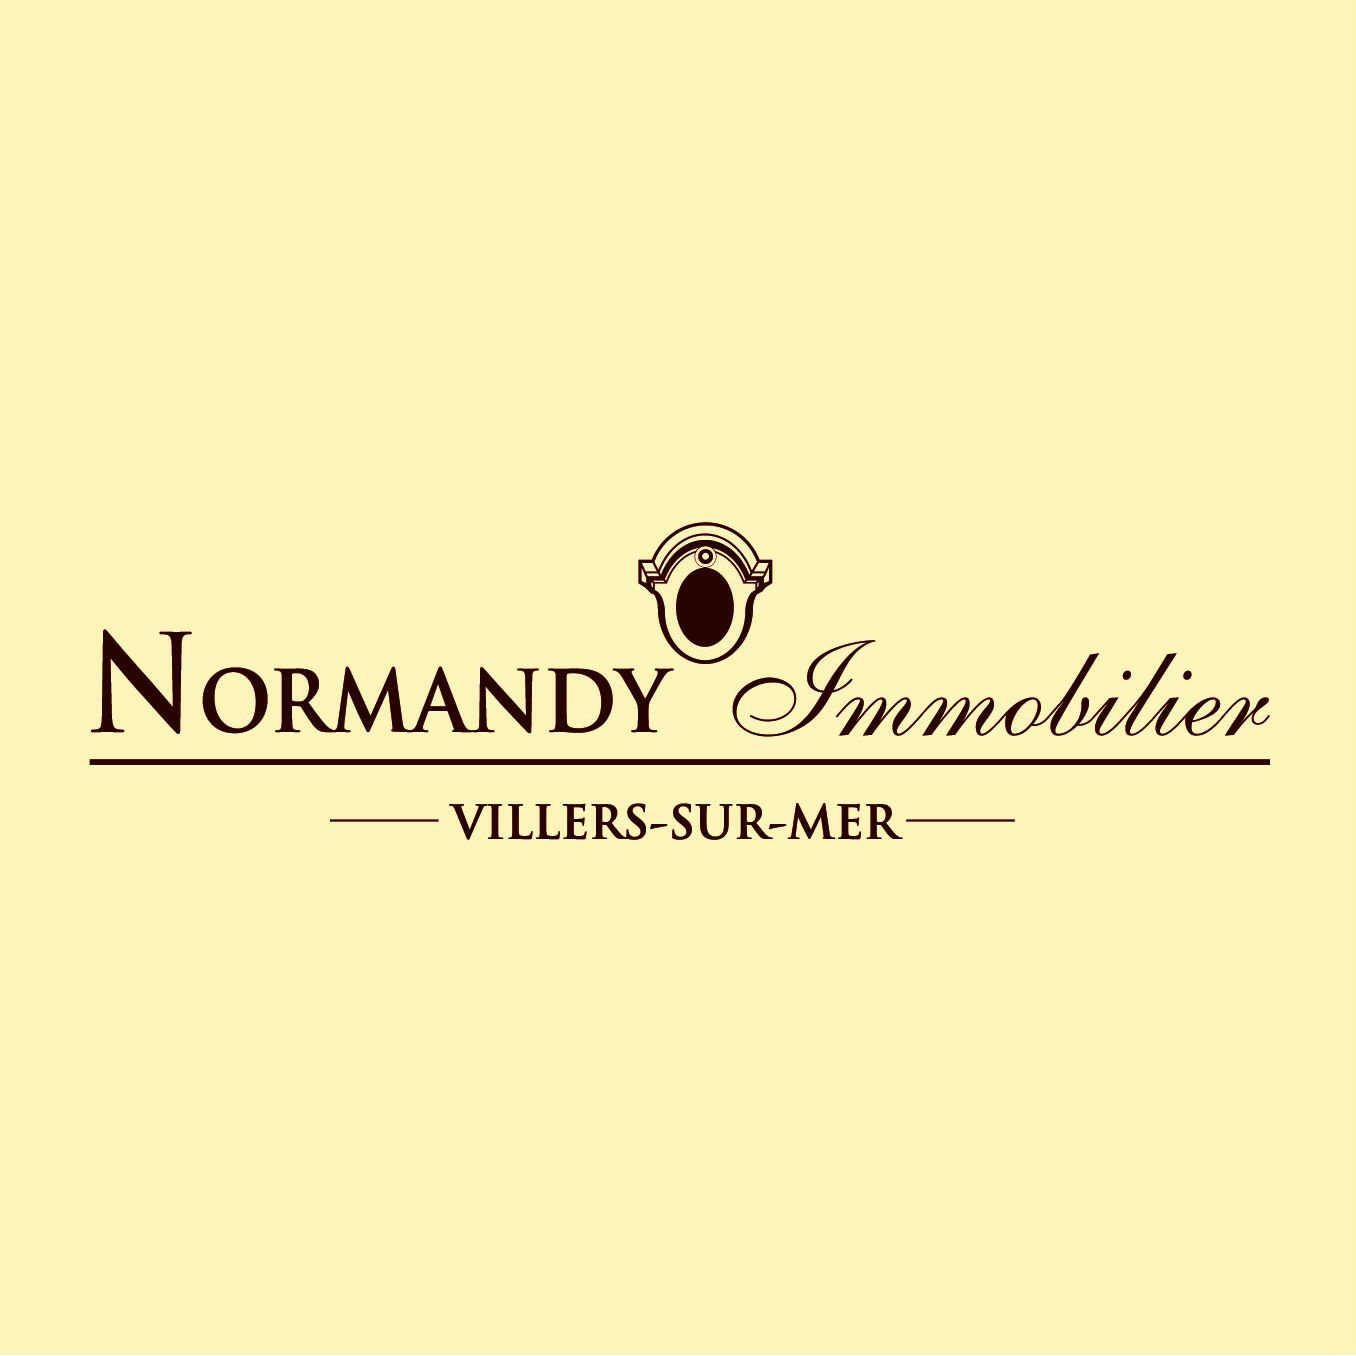 NORMANDY IMMOBILIER